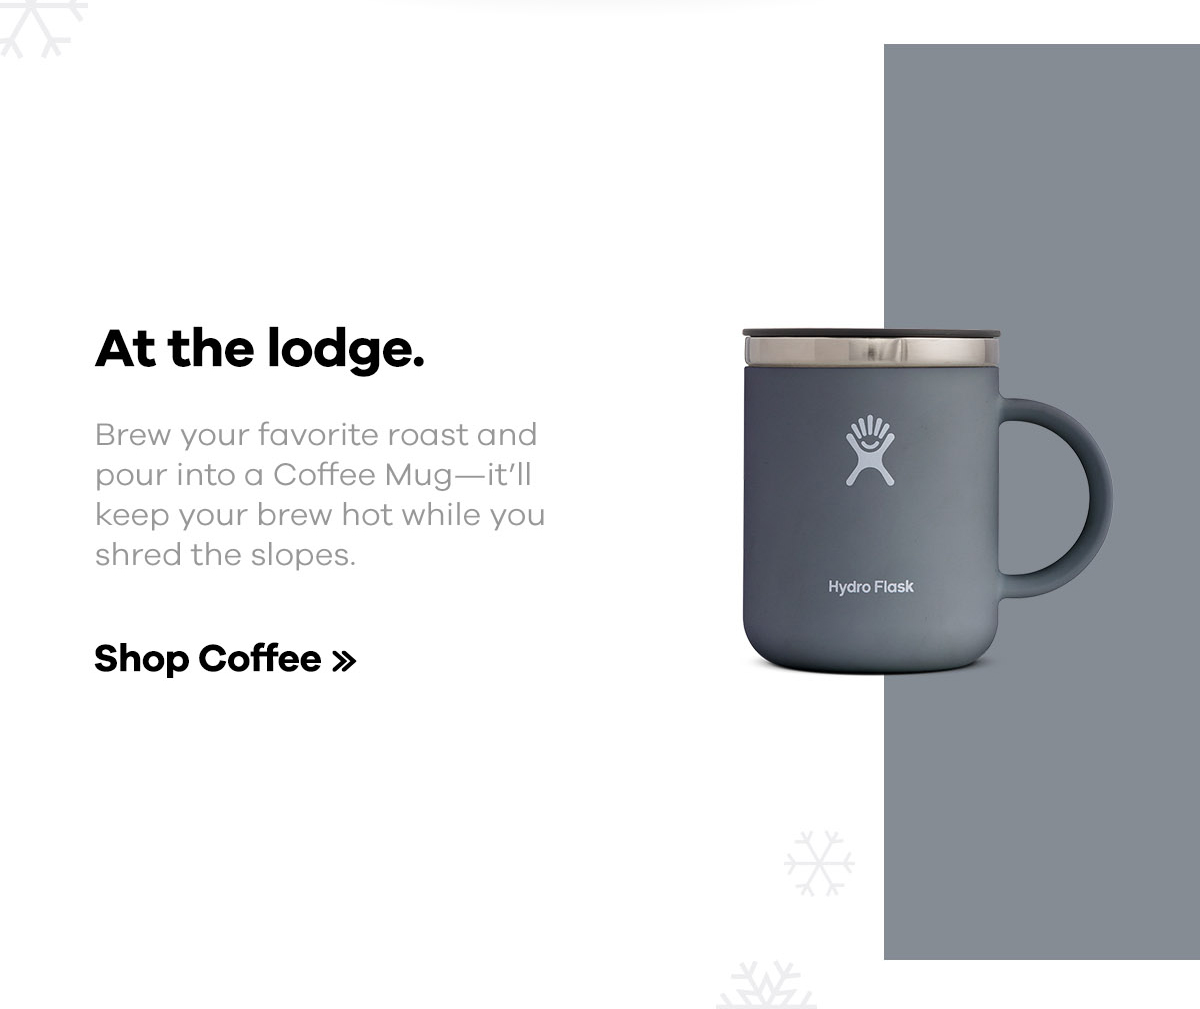 At the lodge. Brew your favorite roast and pour into a Coffee Mug--it'll keep your brew hot while you shred the slopes. | Shop Coffee >>